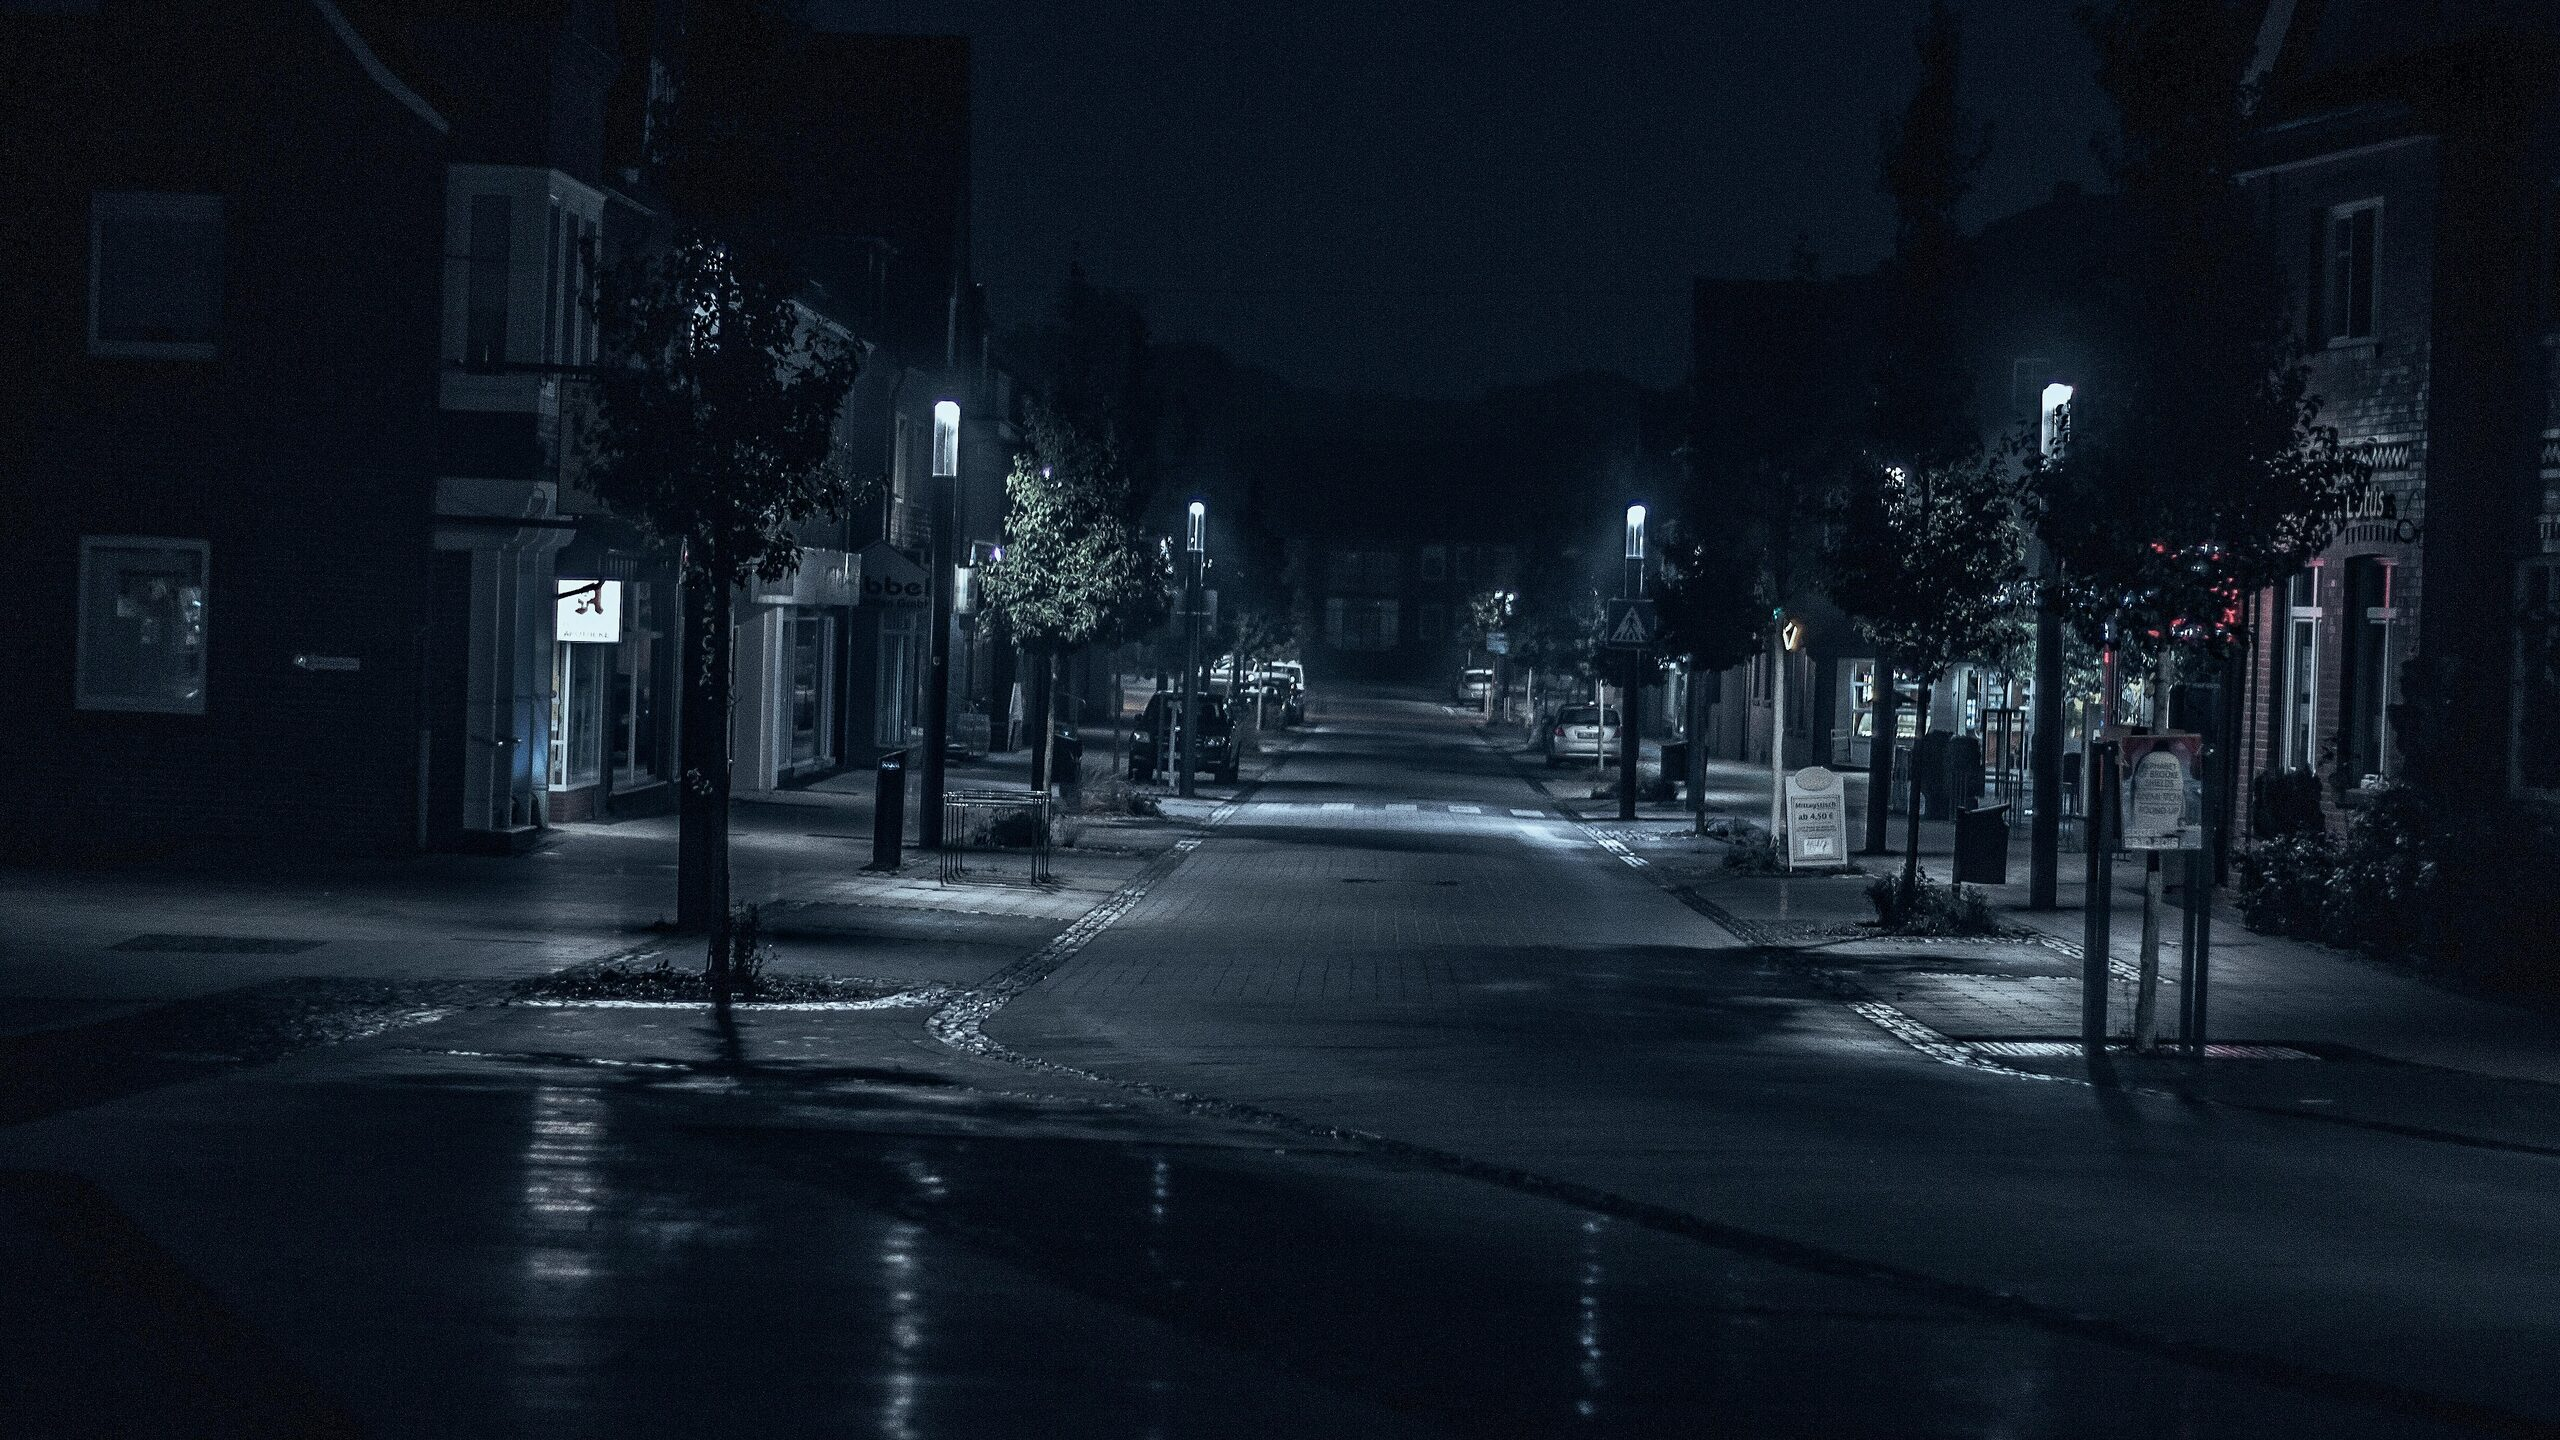 2560x1440 Road Street Night Outdoors Cityscape Evening 5k 1440p Resolution Hd 4k Wallpapers Images Backgrounds Photos And Pictures